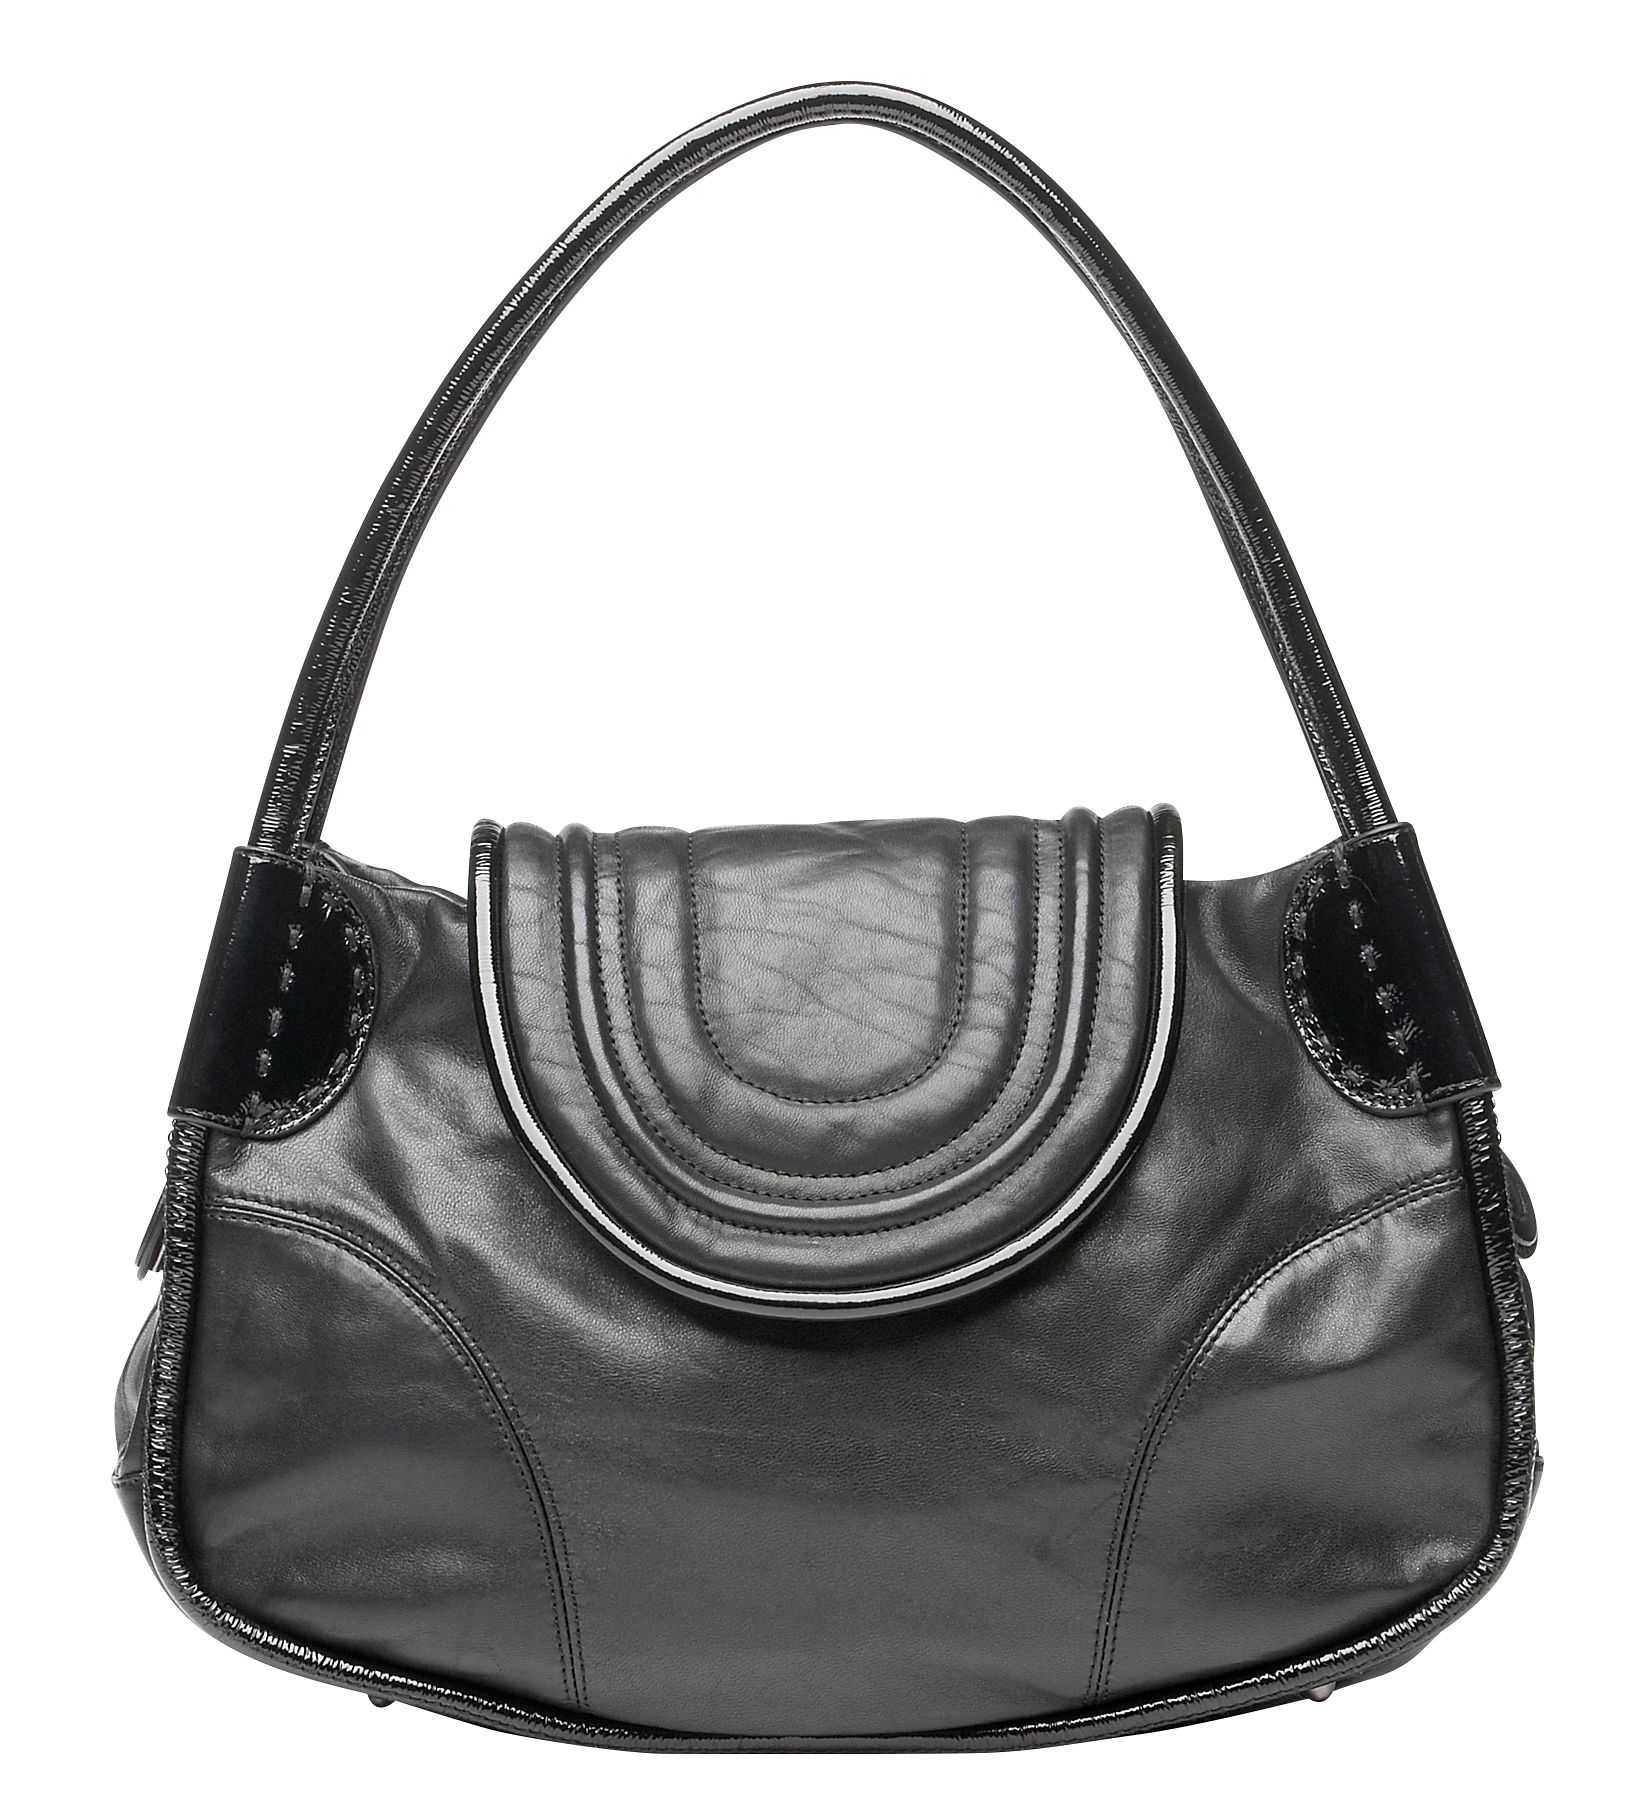 Mimco Under the radar day bag product image